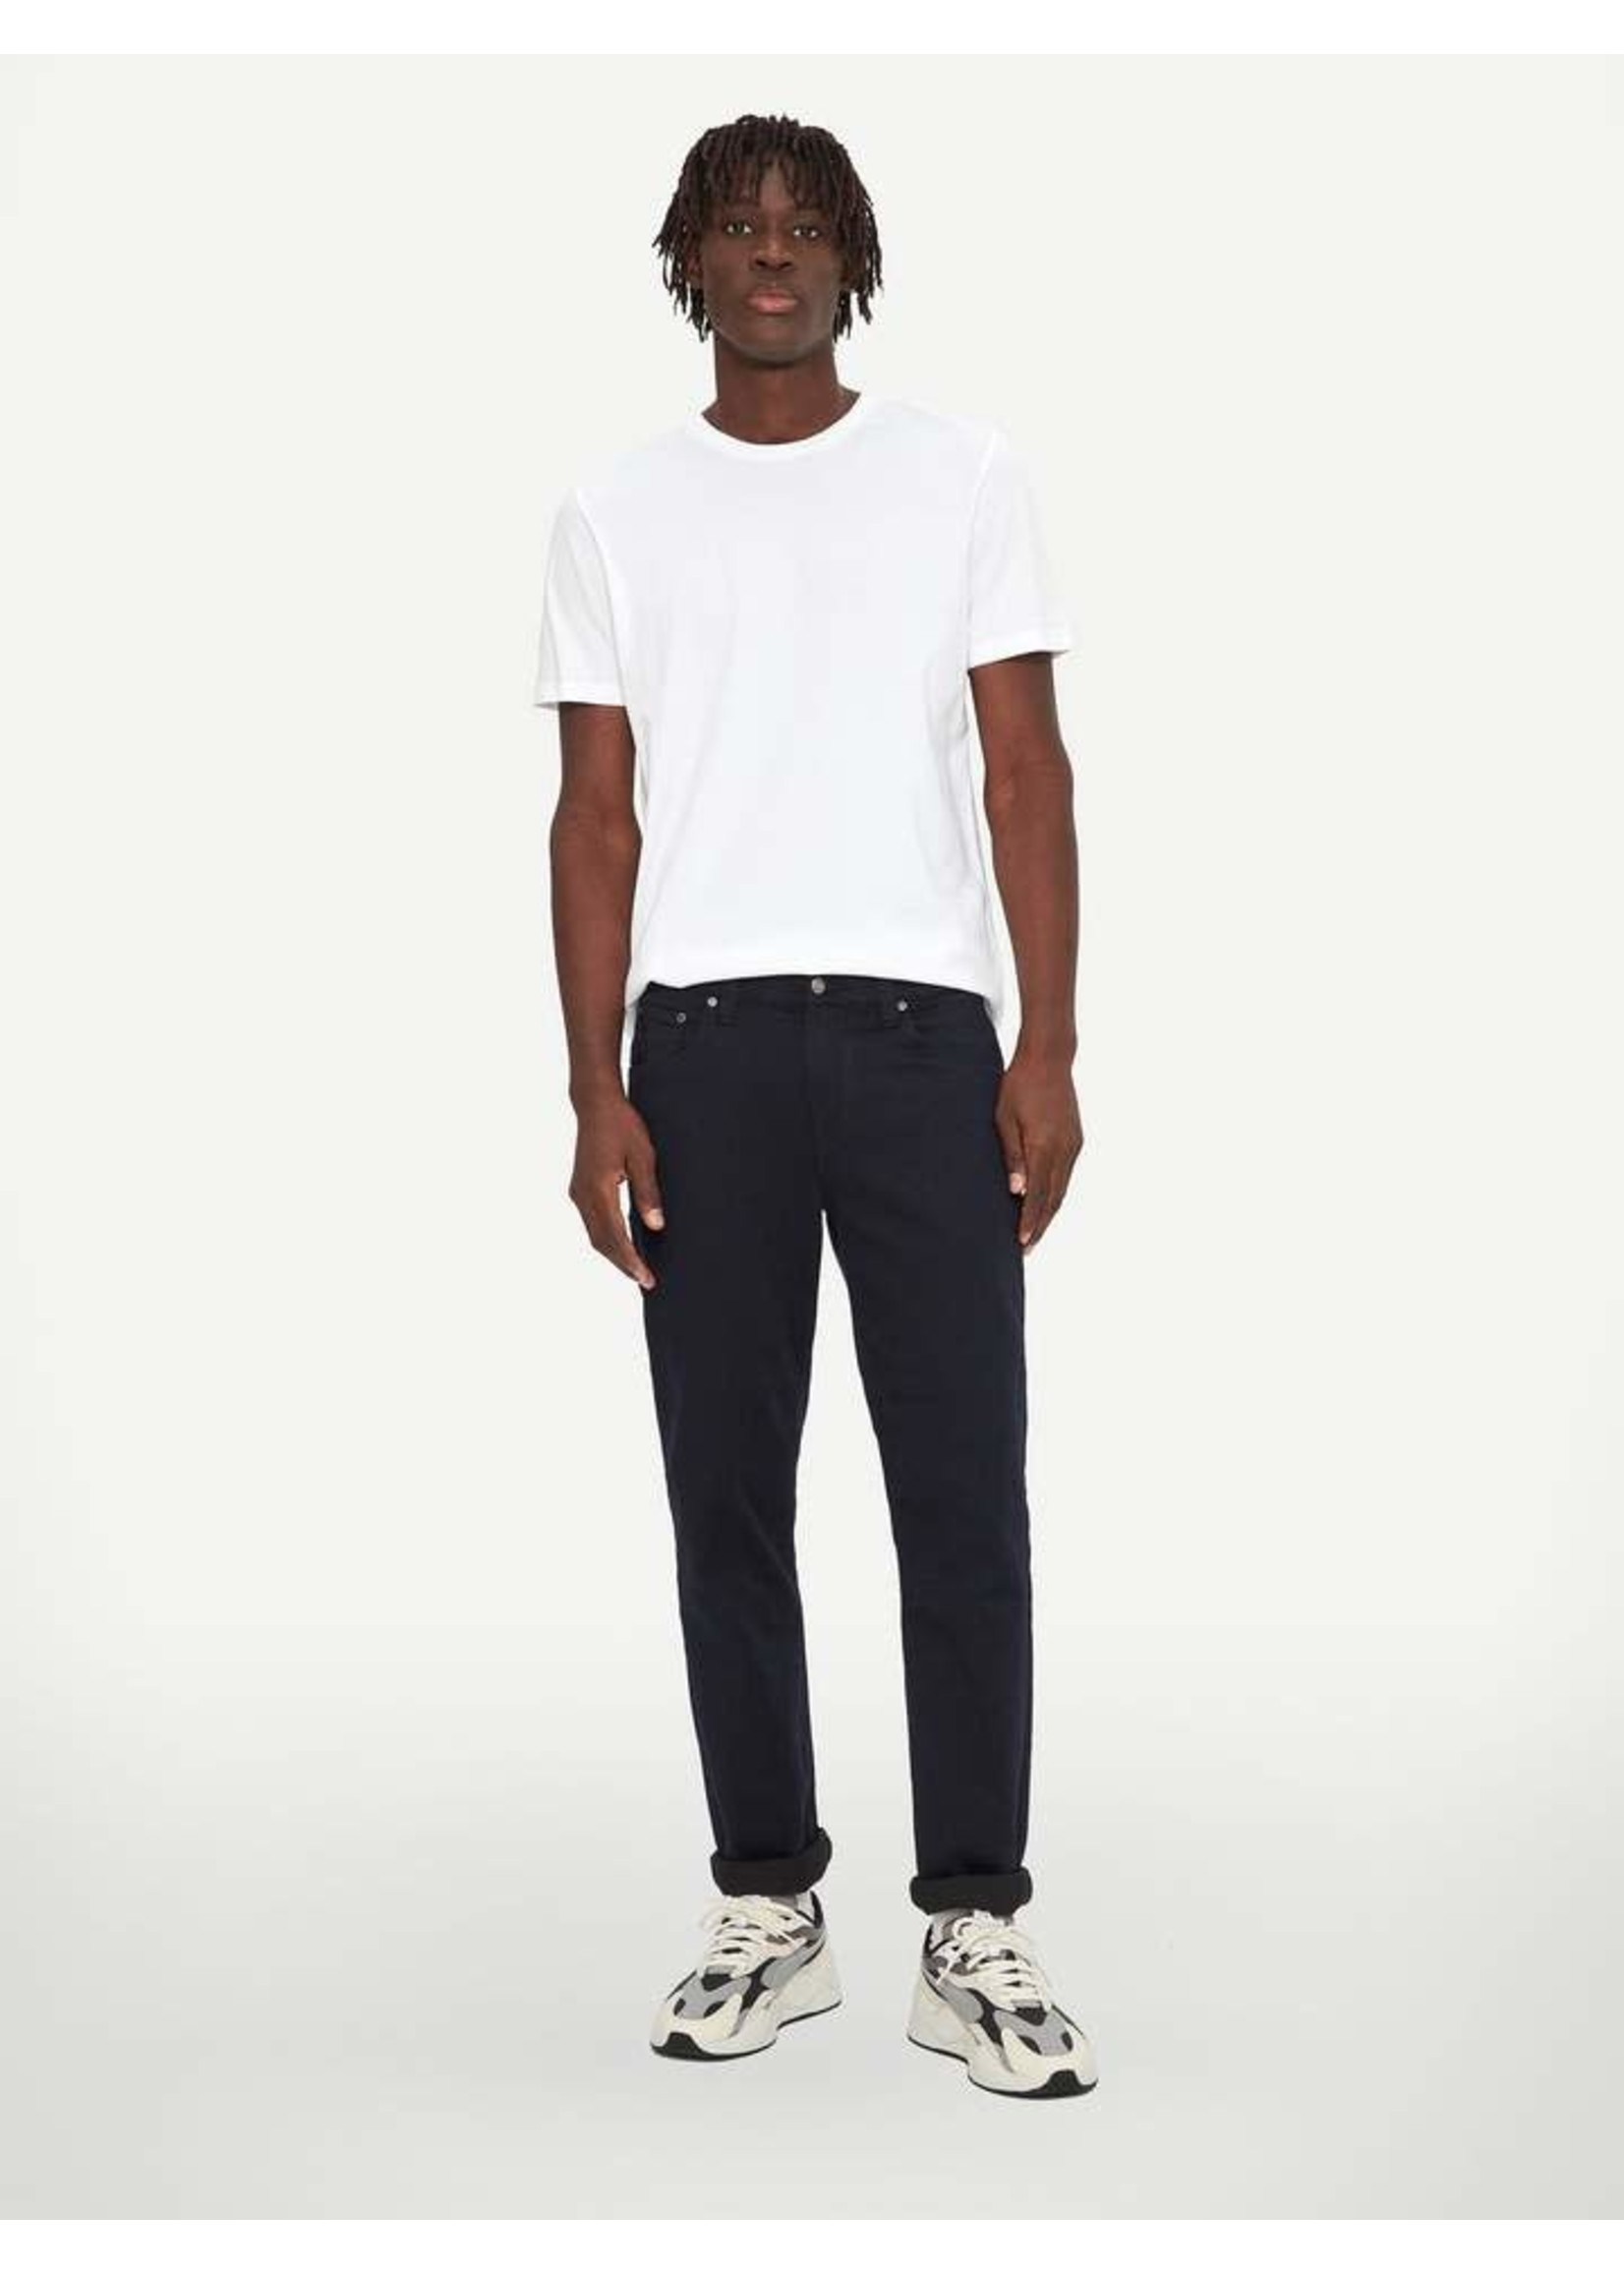 """Lois Jeans Canada The """"Brad Slim 6240-33"""" by Lois Jeans"""